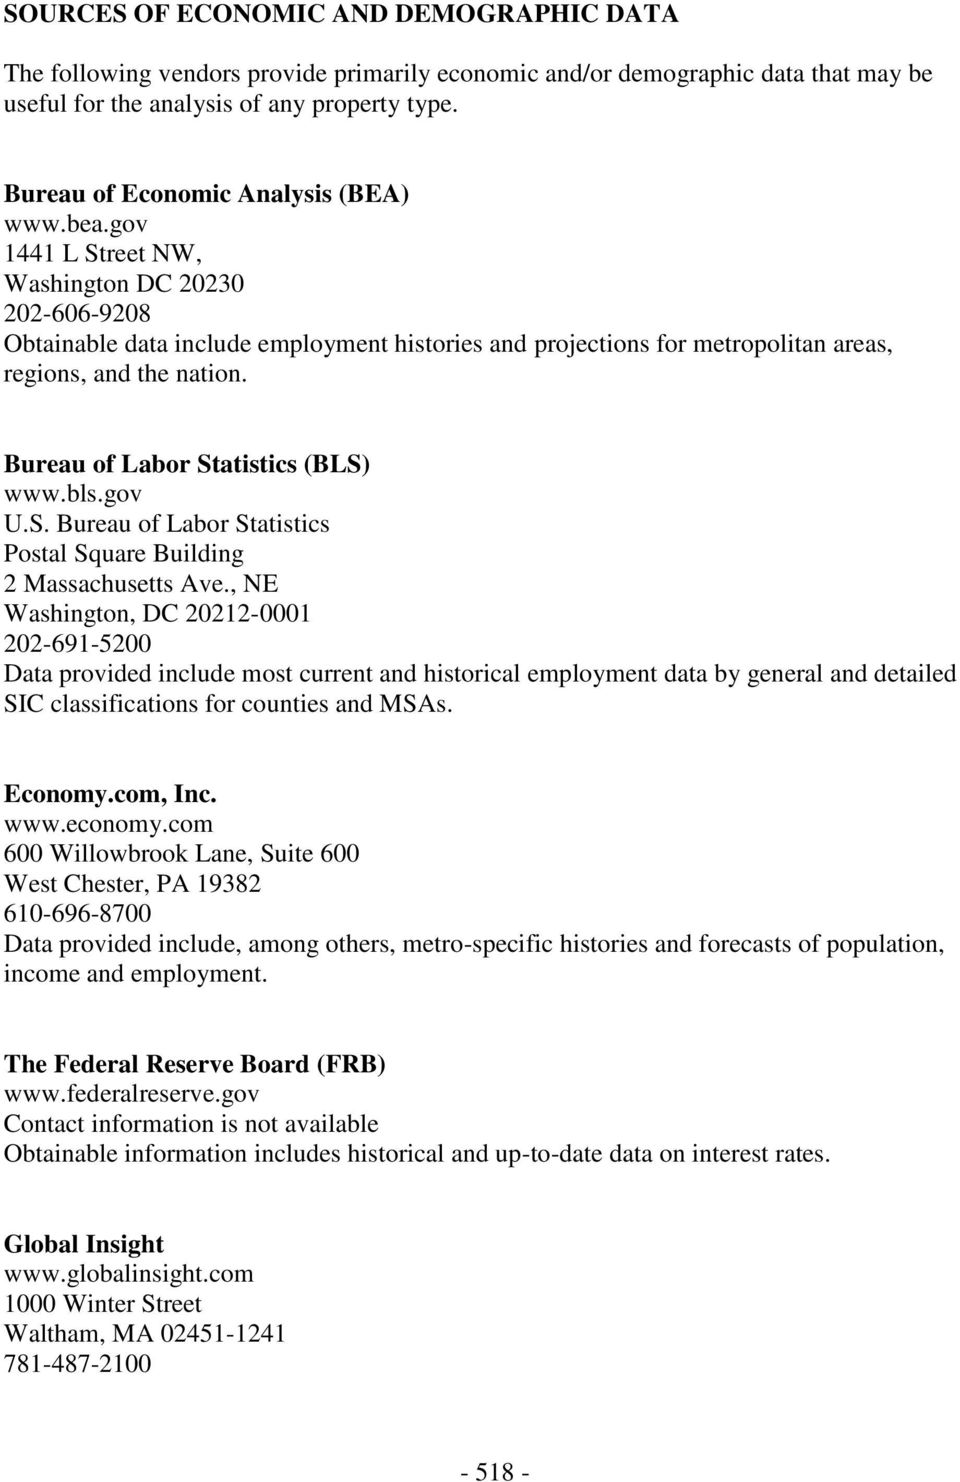 gov 1441 L Street NW, Washington DC 20230 202-606-9208 Obtainable data include employment histories and projections for metropolitan areas, regions, and the nation.